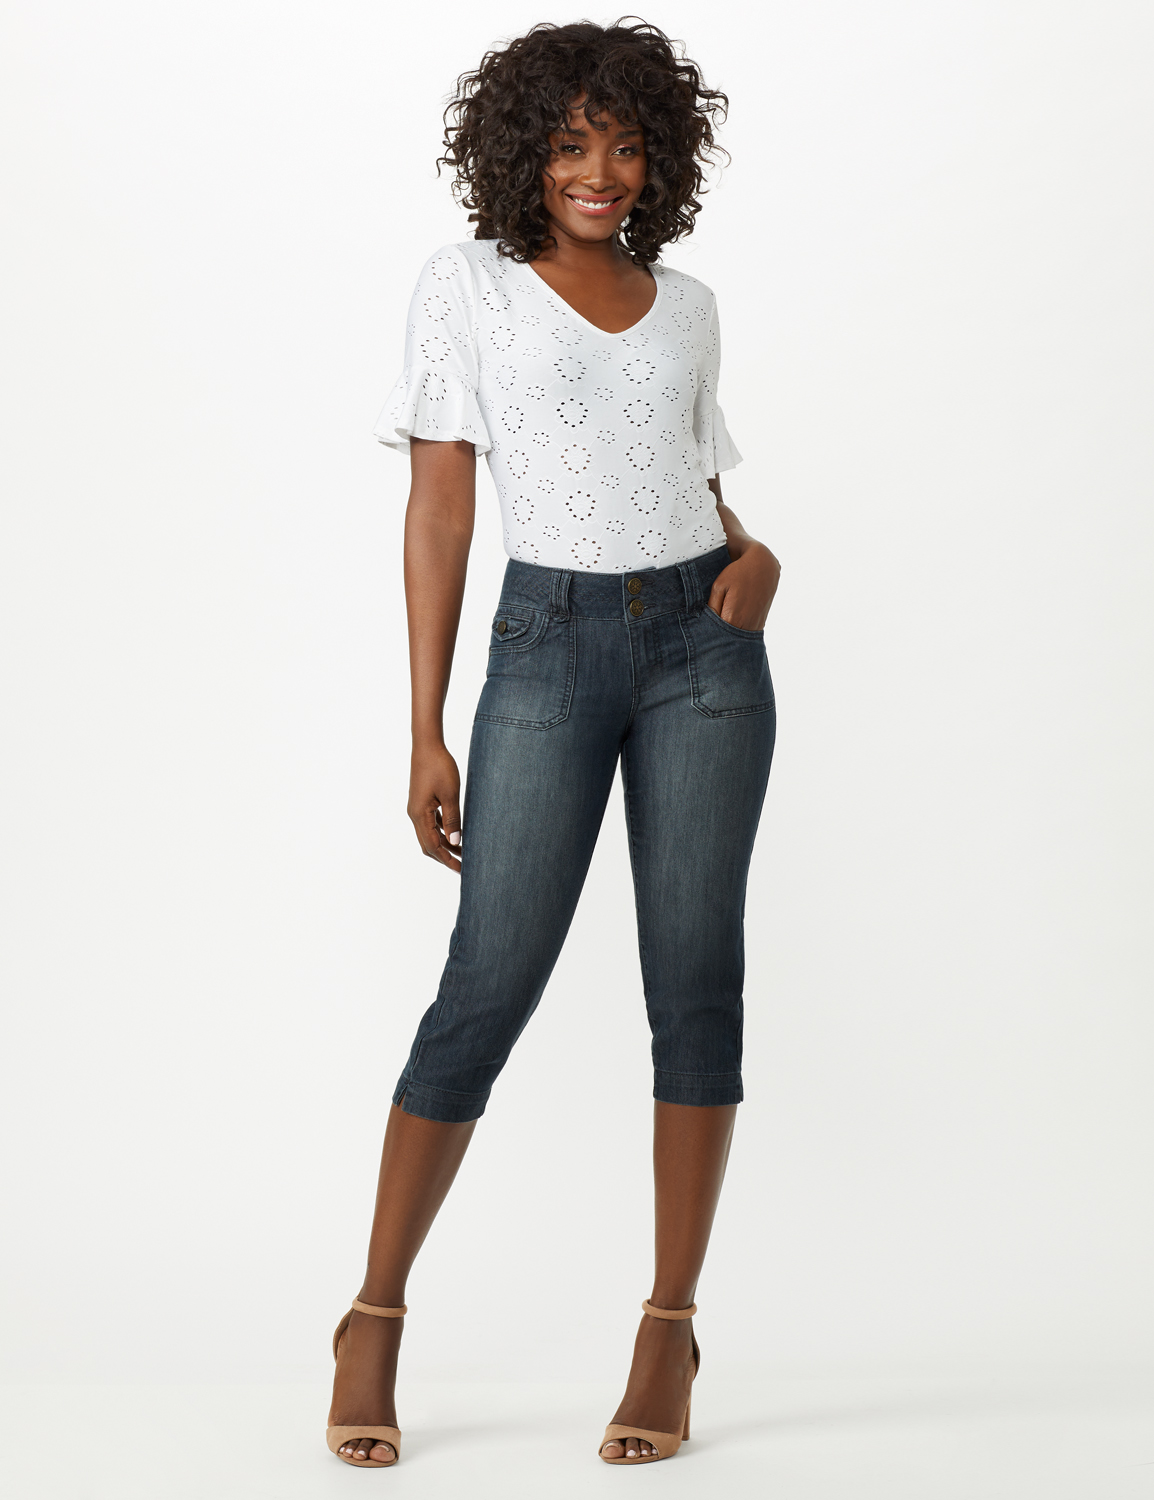 2 Button Capri With Front Pocket and Back Flap Pkts - Riviera Blue Wash - Front